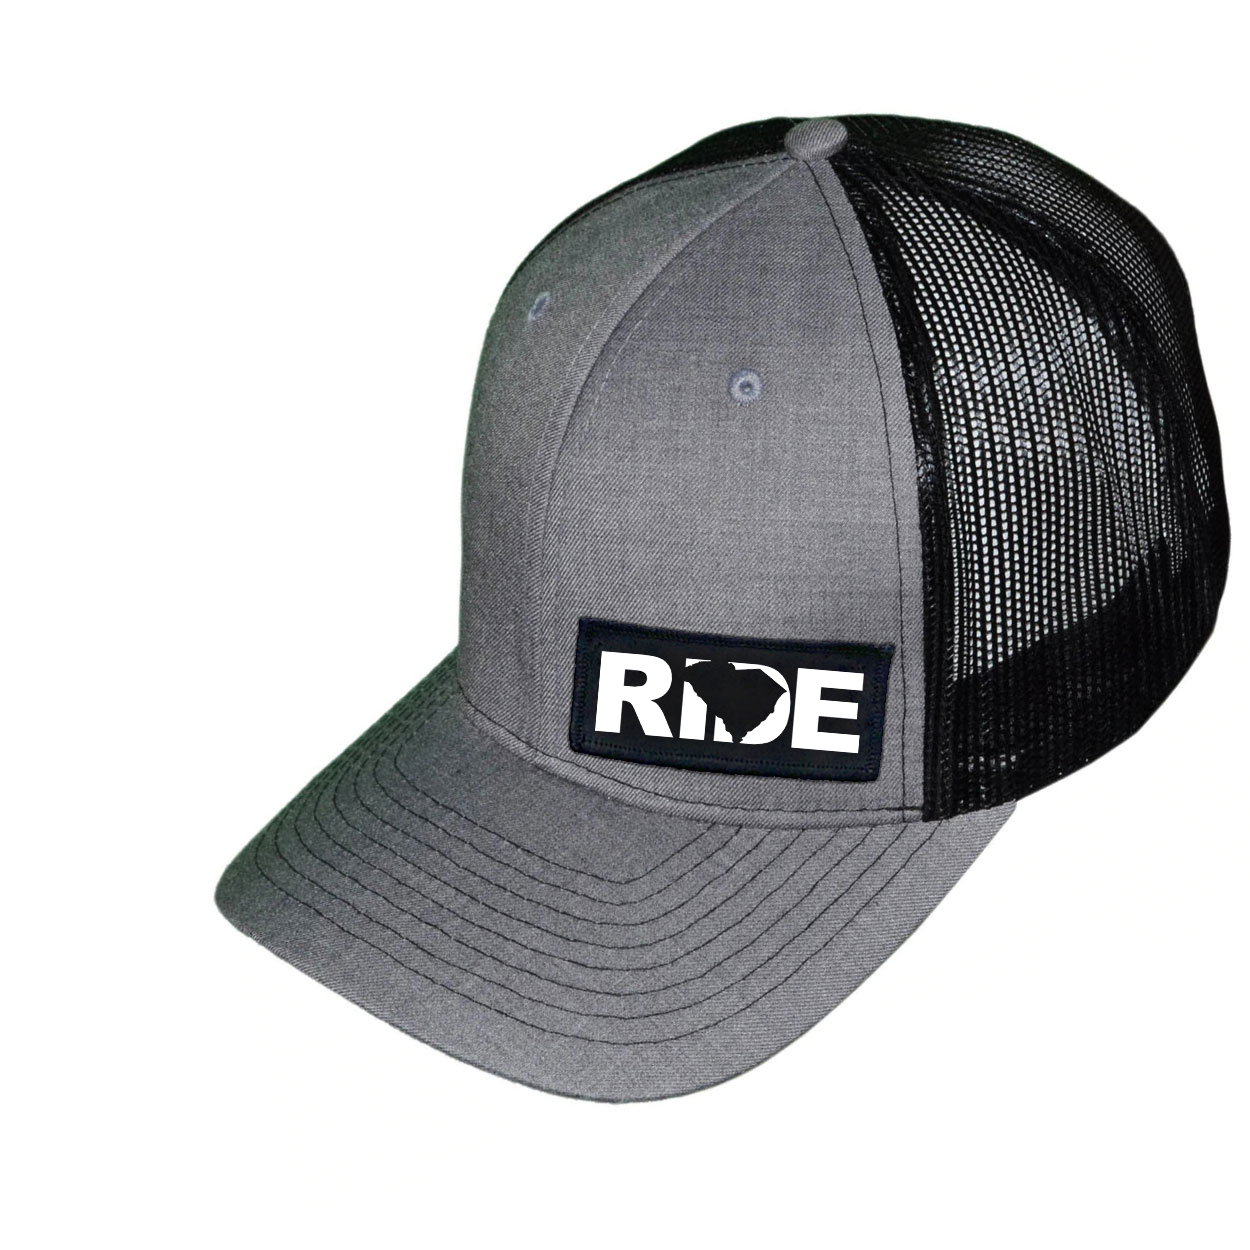 Ride South Carolina Night Out Woven Patch Snapback Trucker Hat Heather Gray/Black (White Logo)